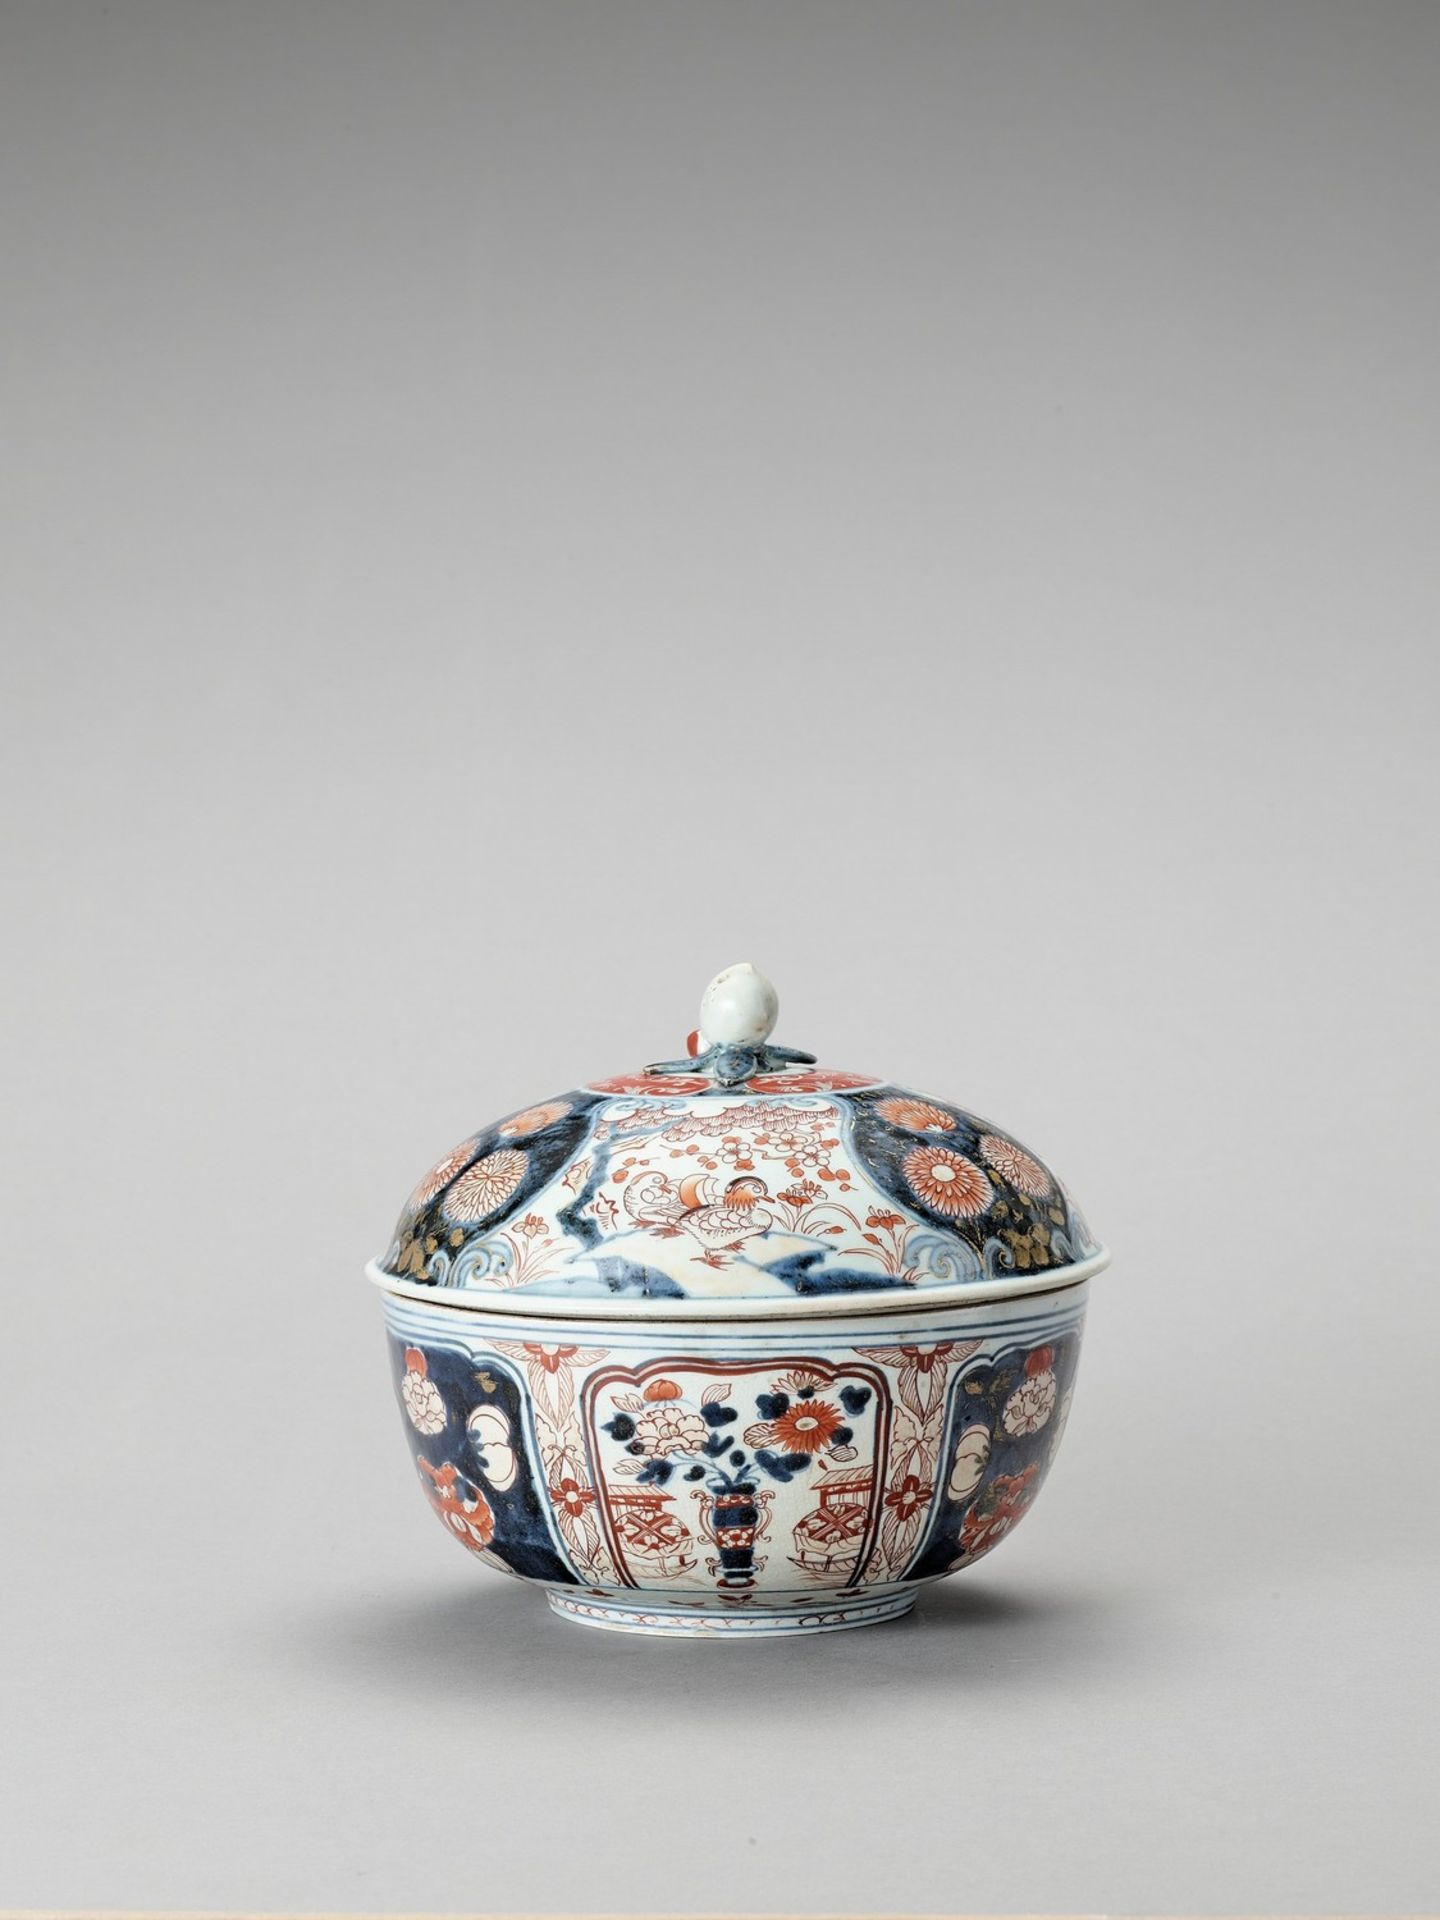 AN IMARI PORCELAIN BOX WITH COVER - Image 4 of 7